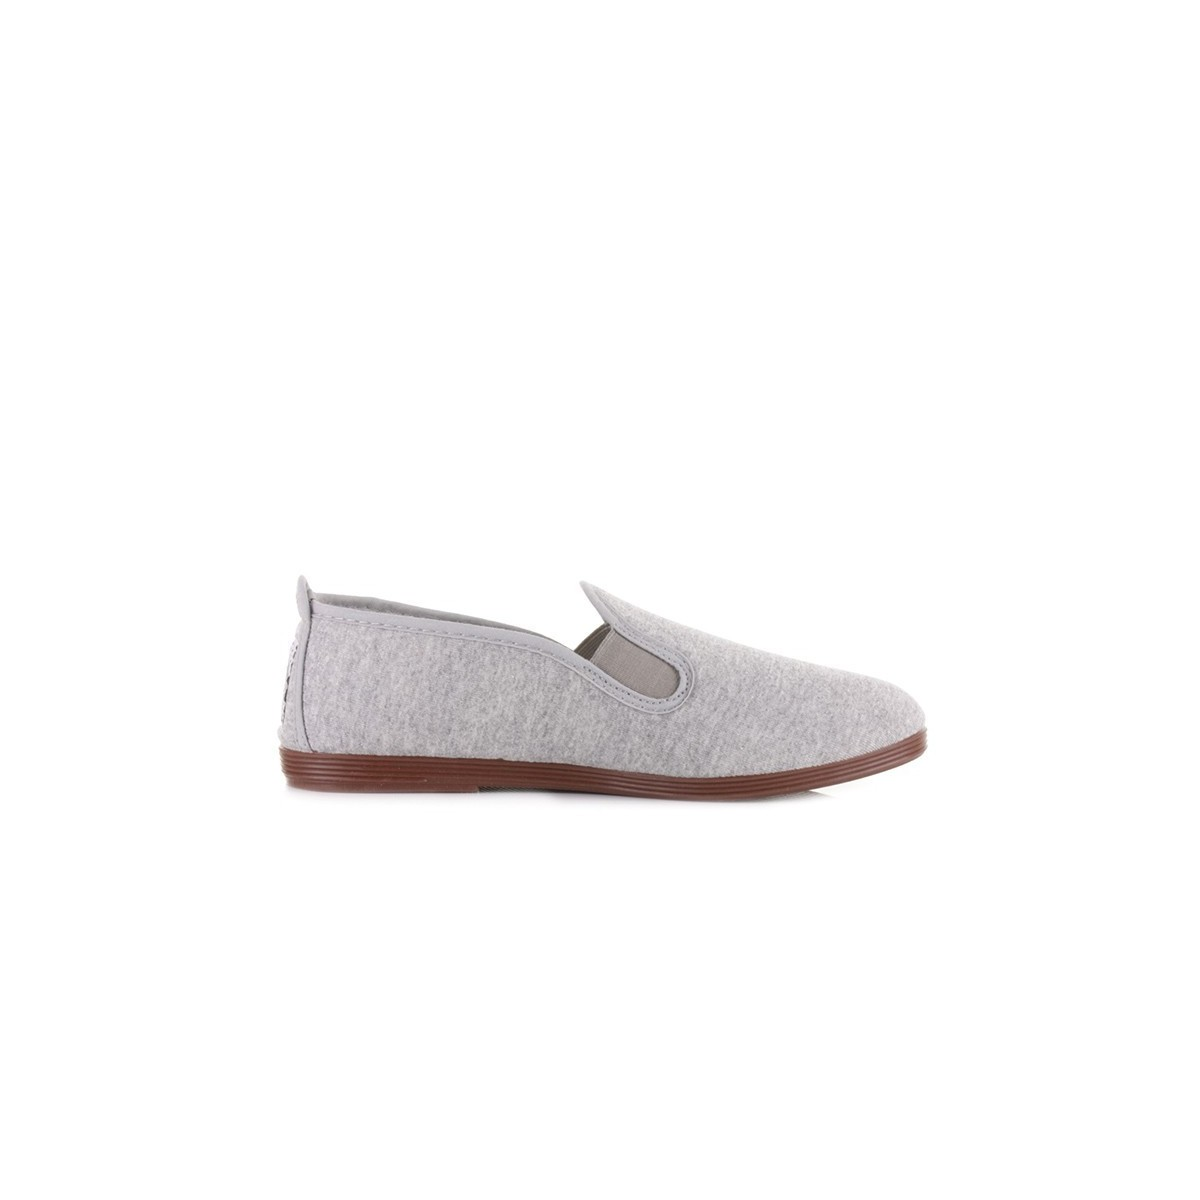 Chausson Flossy toile gris chiné